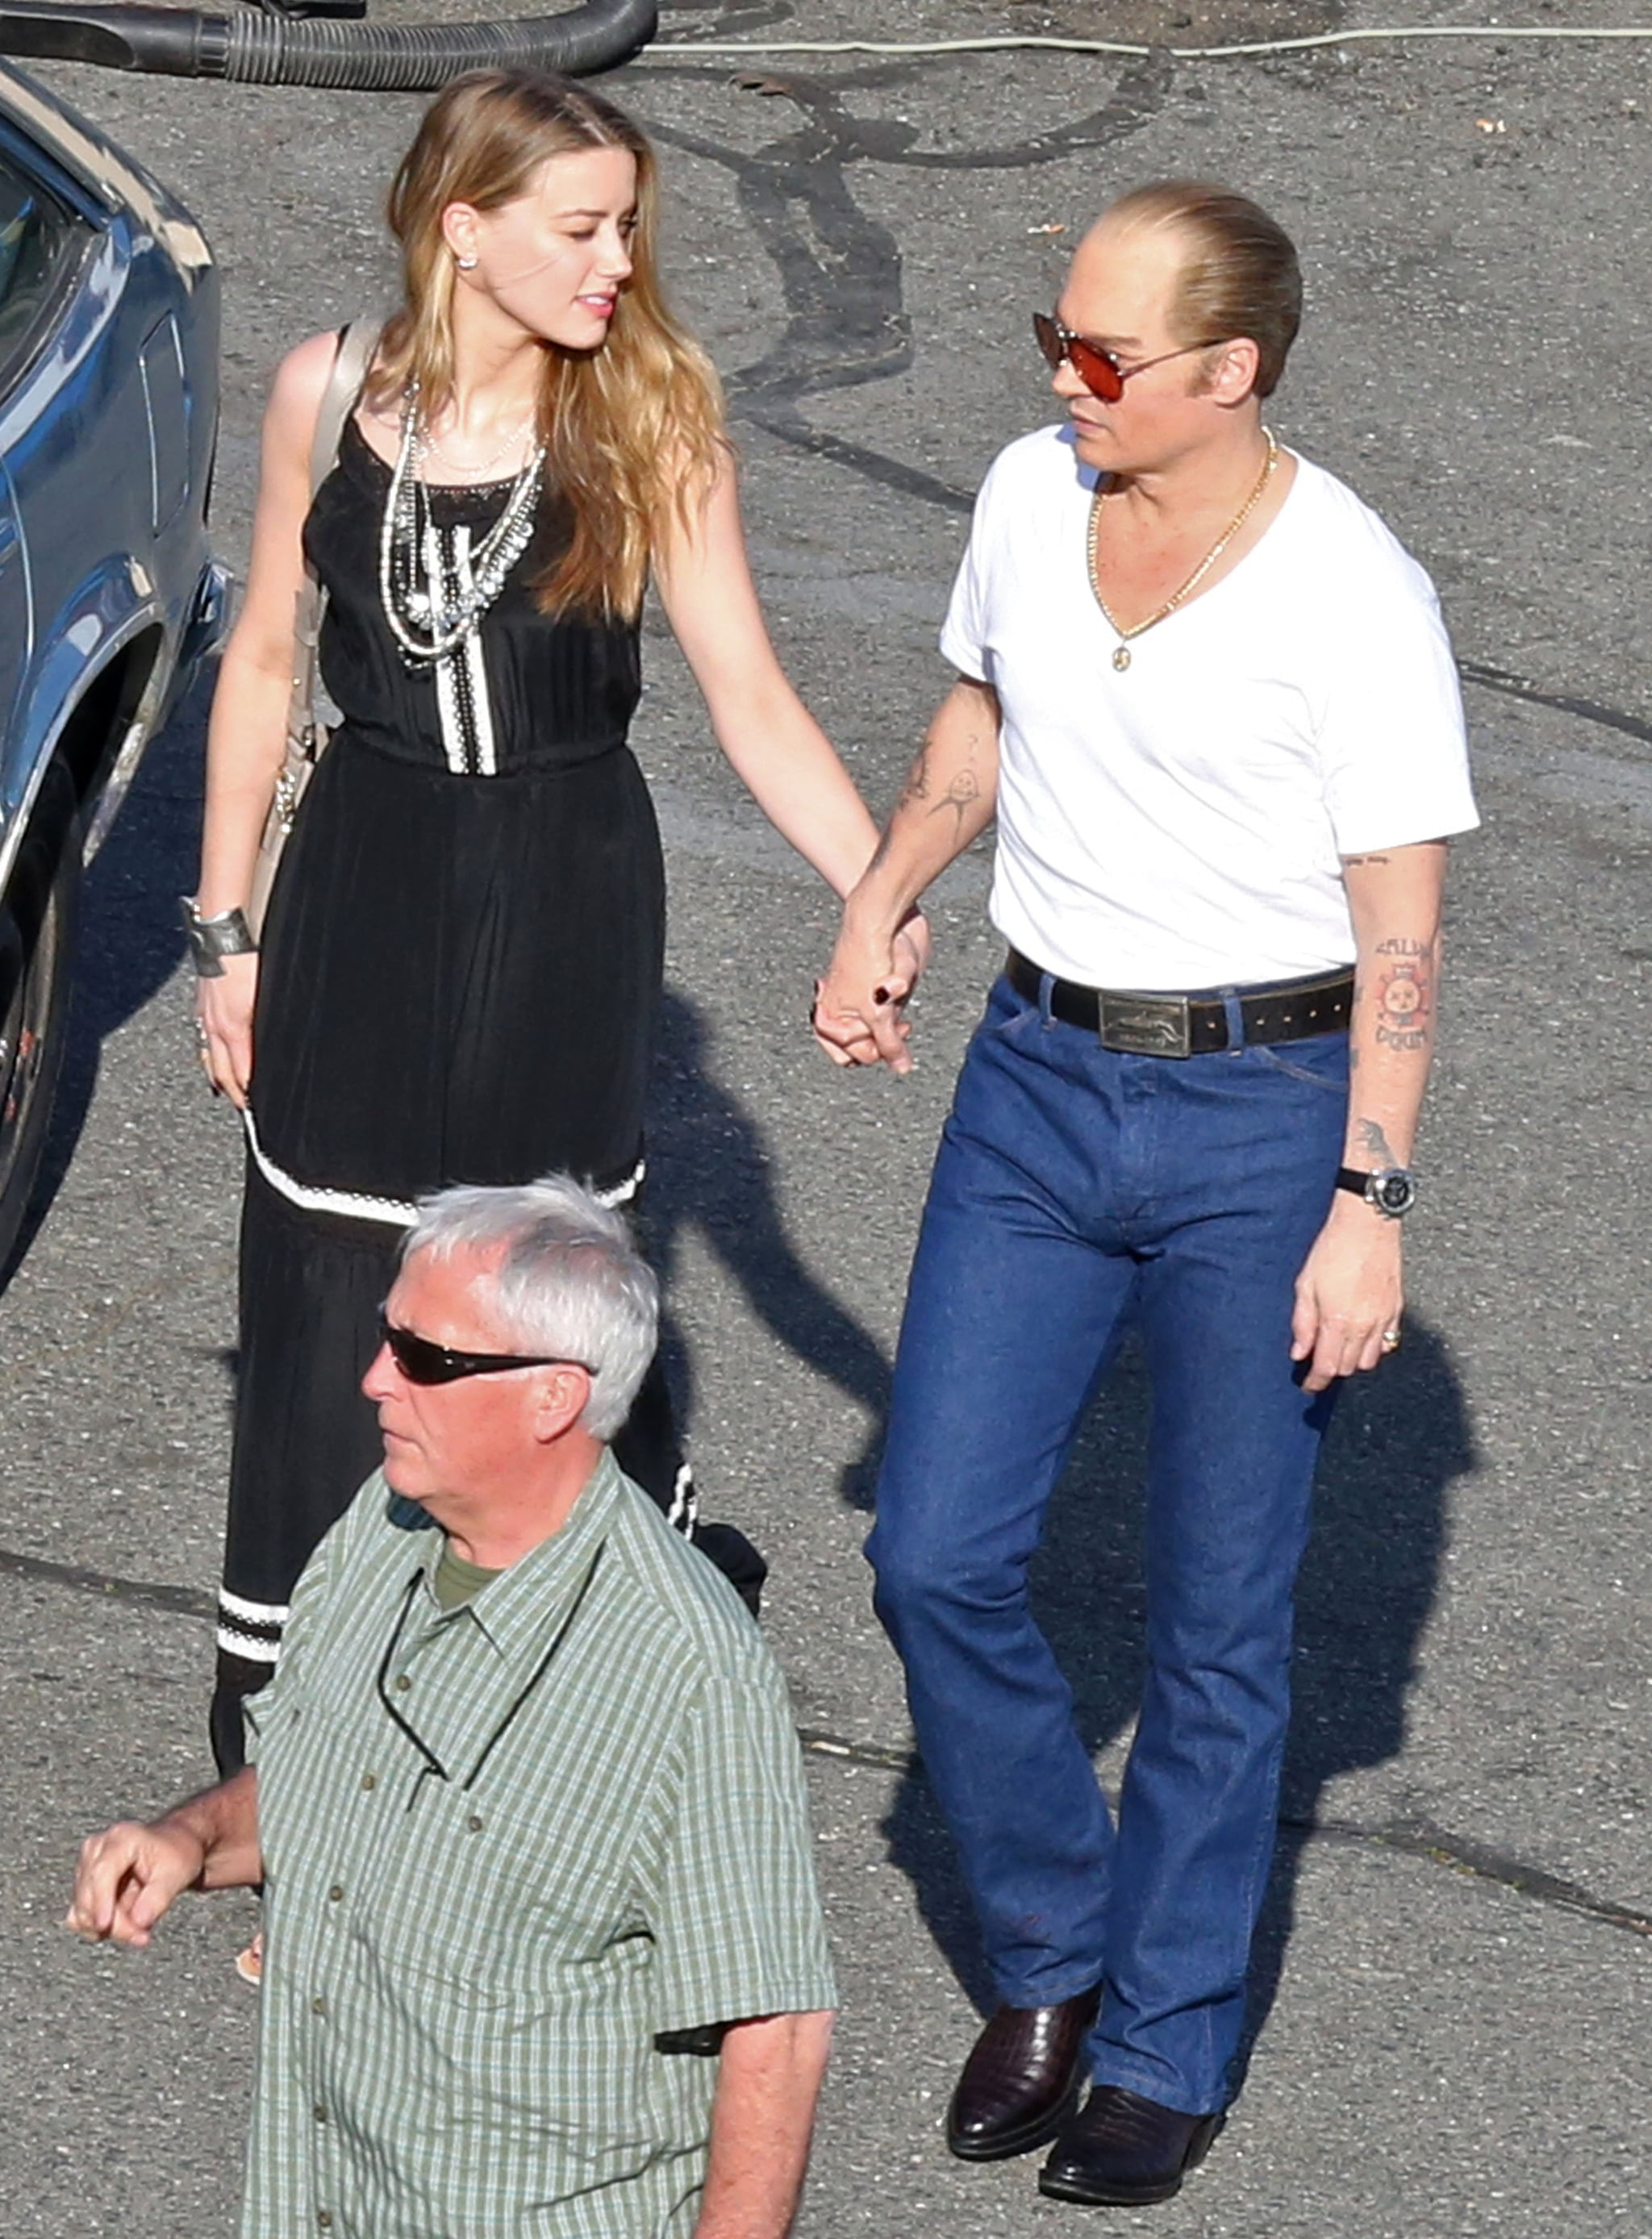 Amber Heard Doesn't Seem to Mind Johnny Depp's New Look